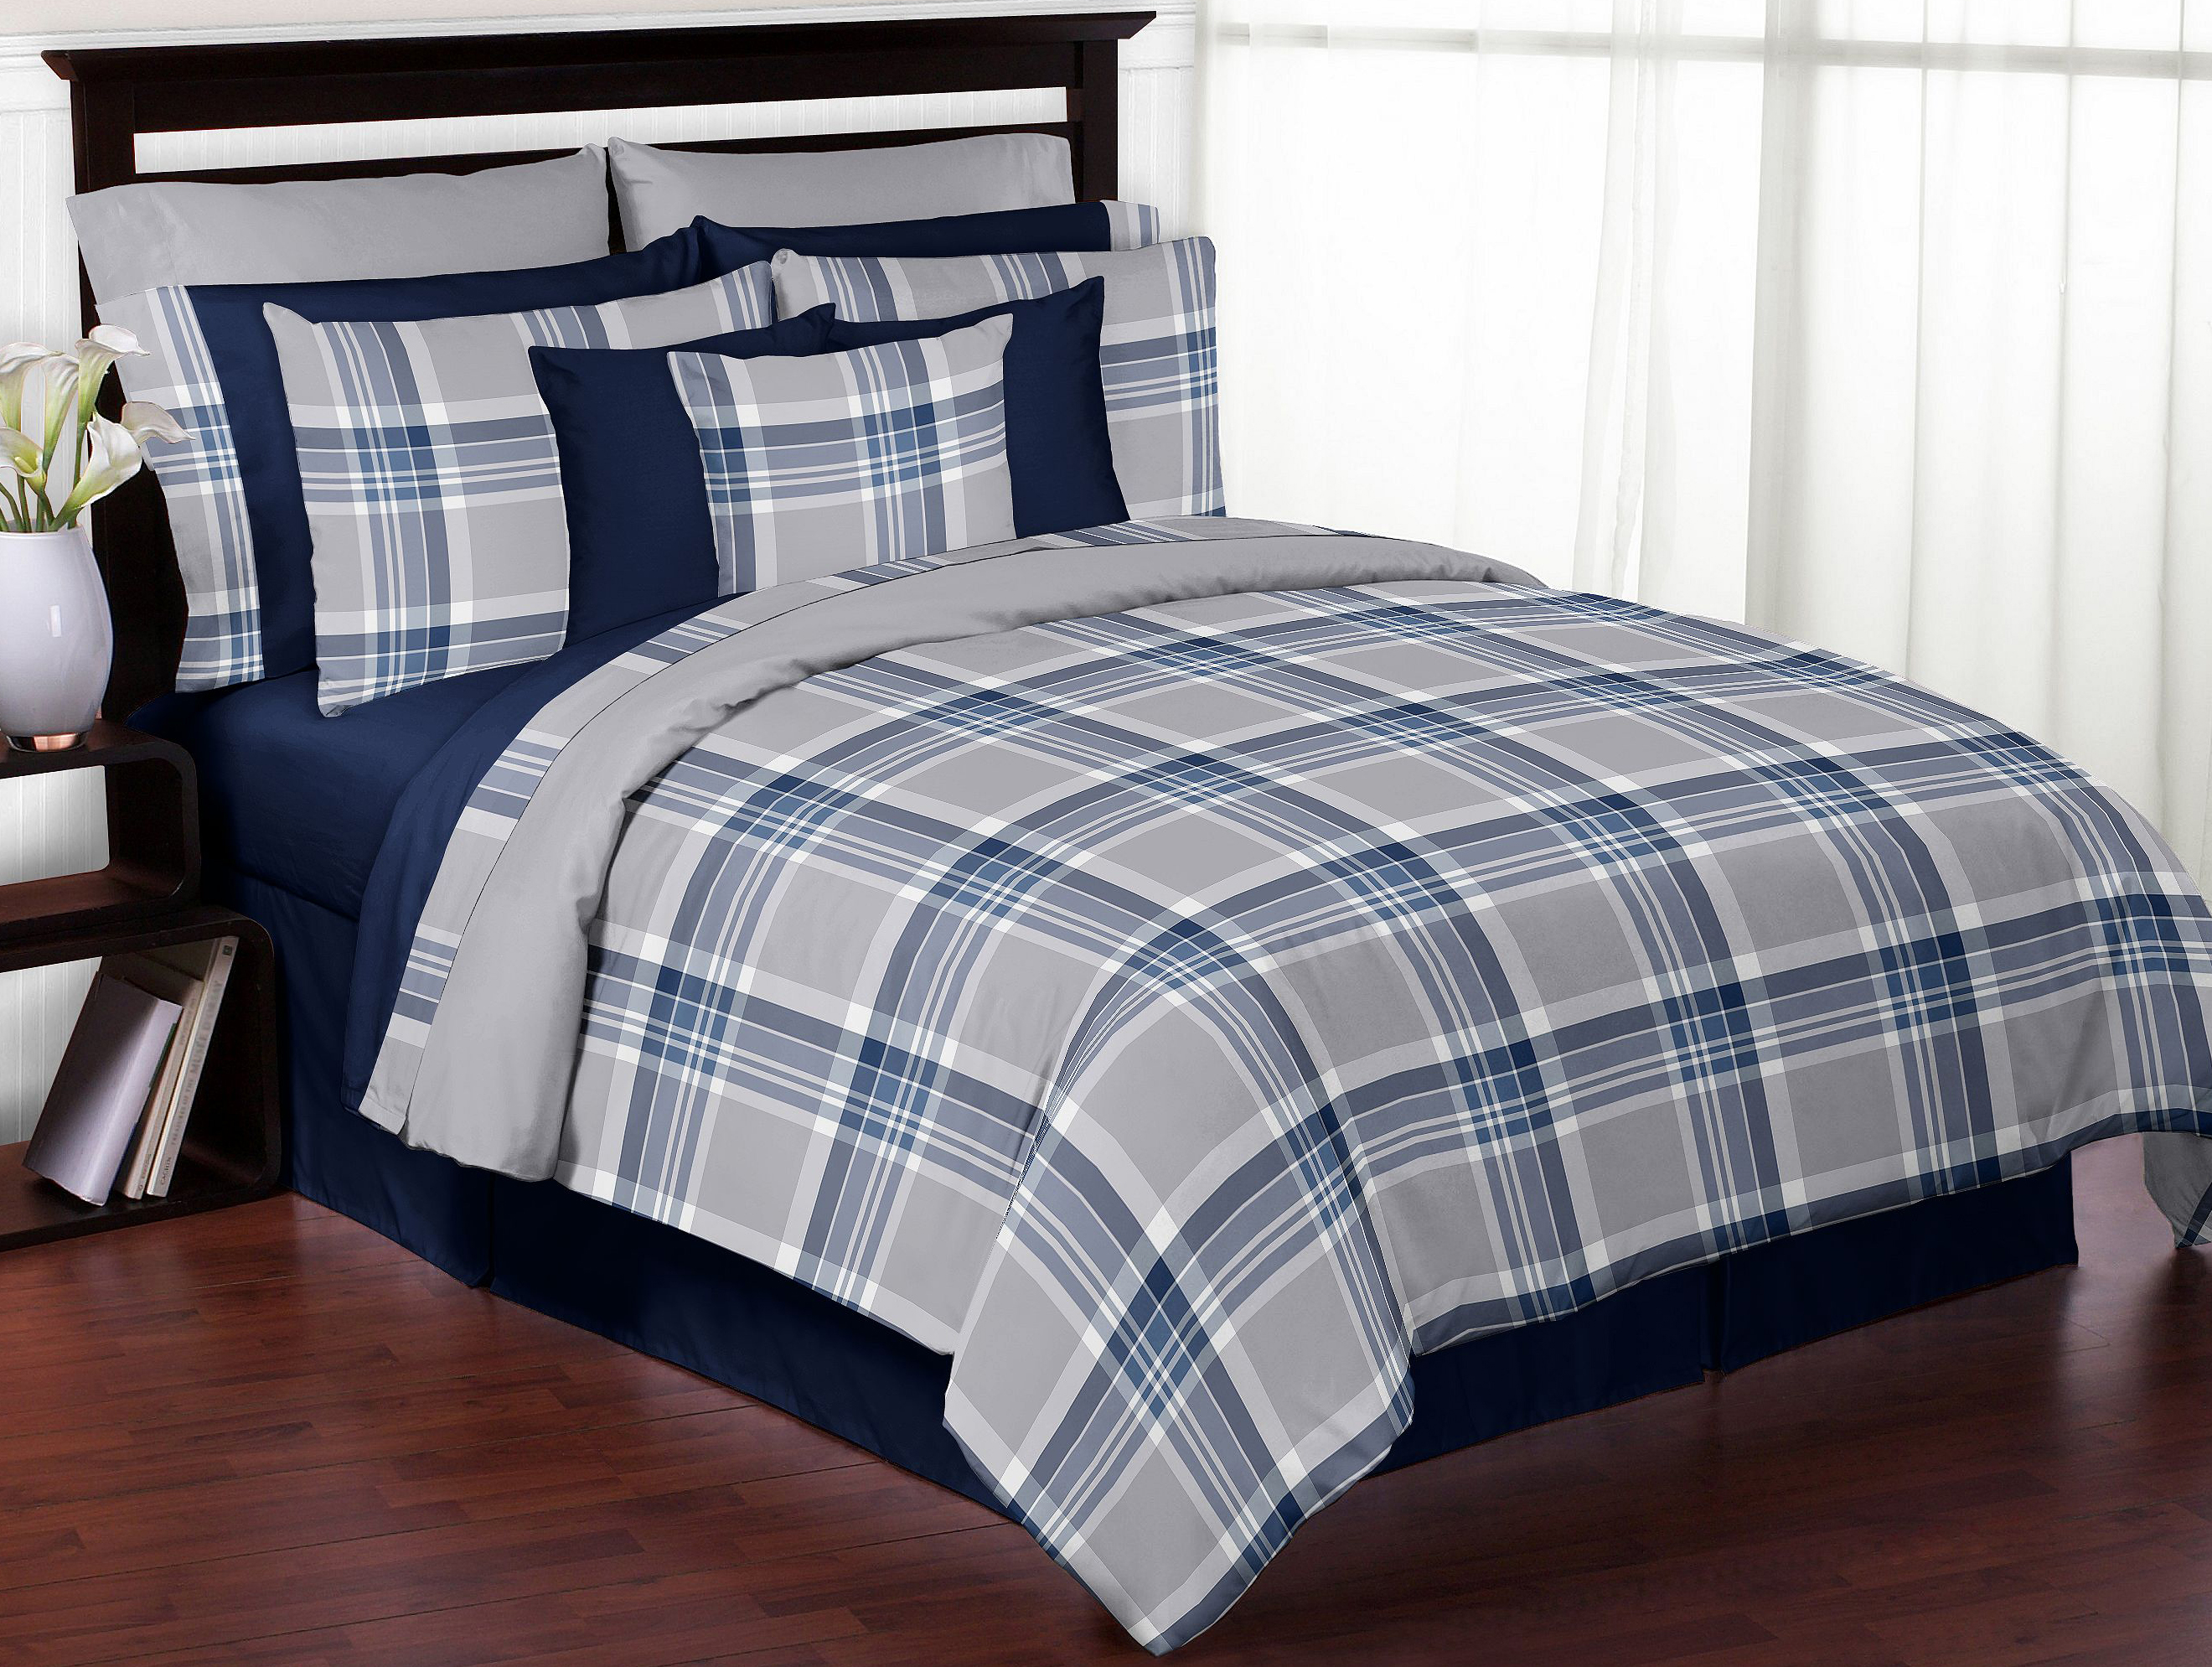 Navy Blue and Gray Plaid 3pc Full/Queen Bedding Set by Sweet Jojo Designs